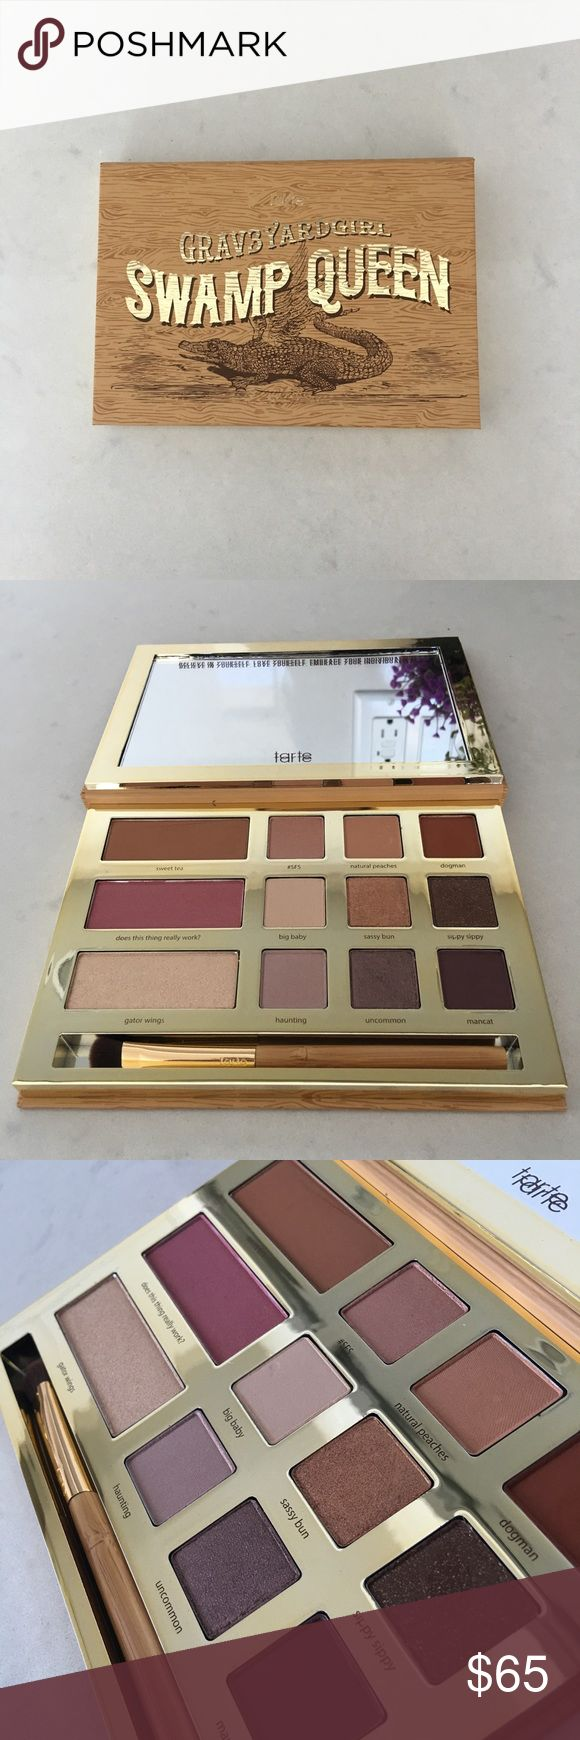 Tarte Swamp Queen Eyeshadow Palette Limited edition Swamp Queen palette from tarte and grav3yardgirl. Never been used! Sorry no trades.  tarte Makeup Eyeshadow